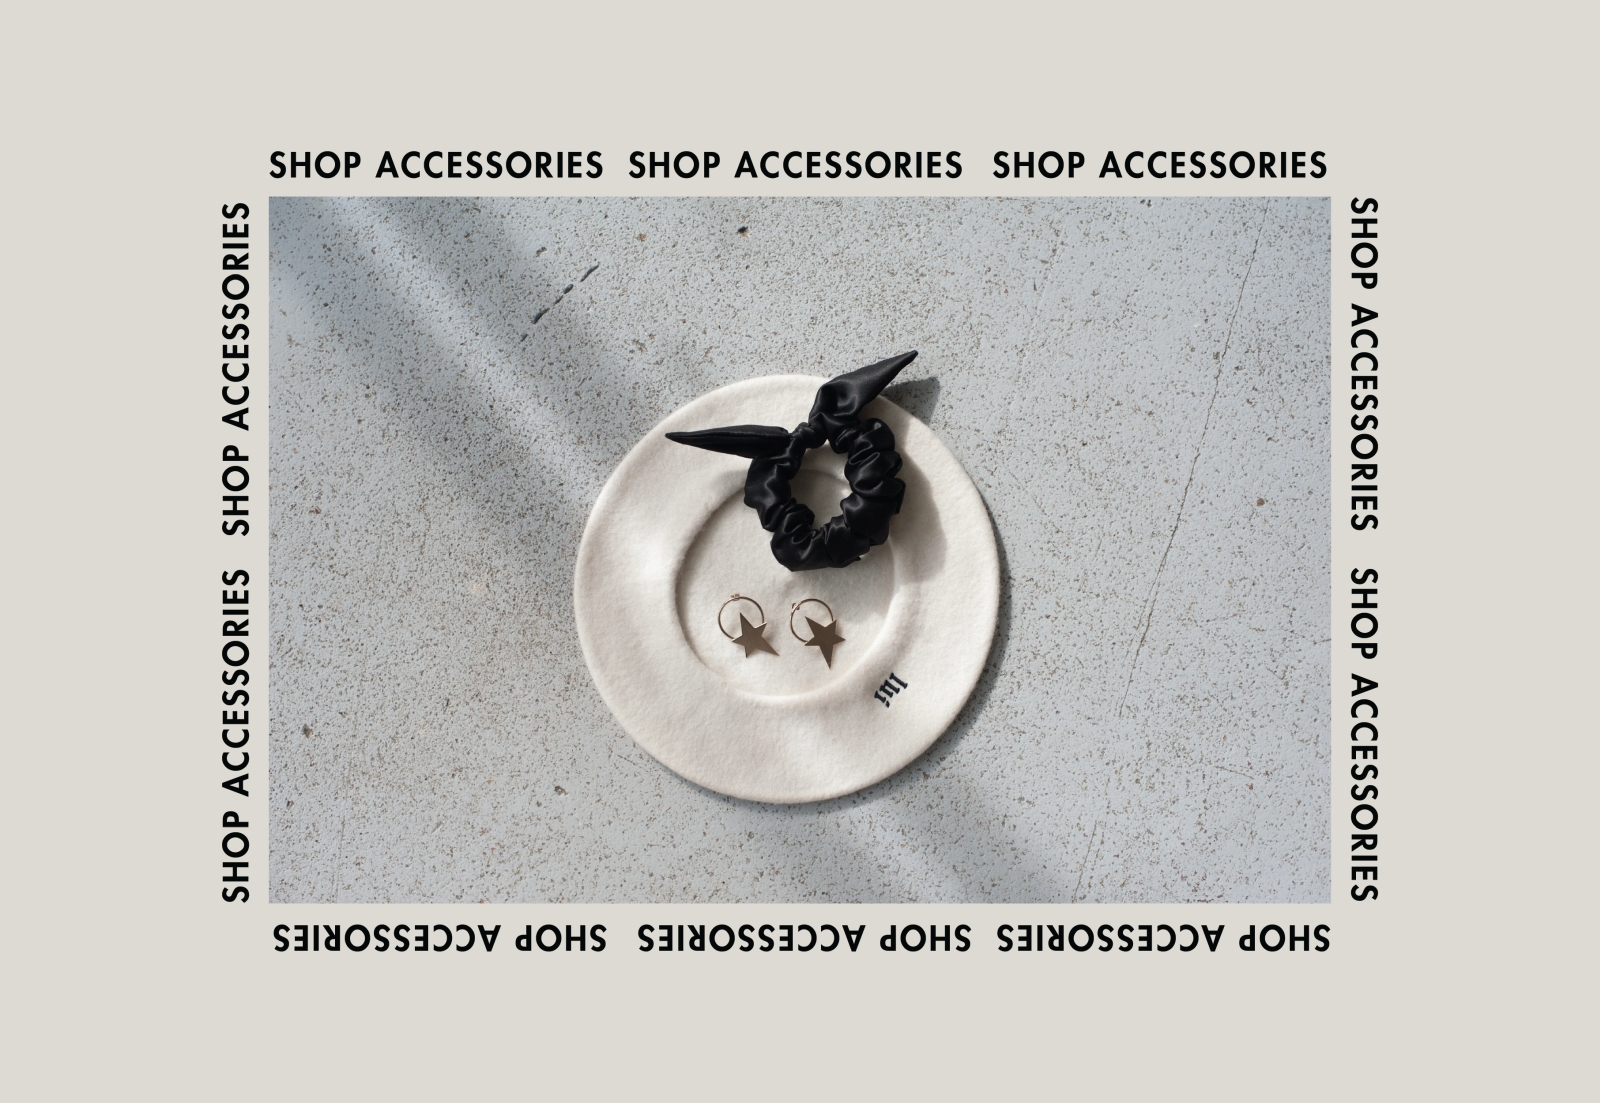 Accessories in Lui Store